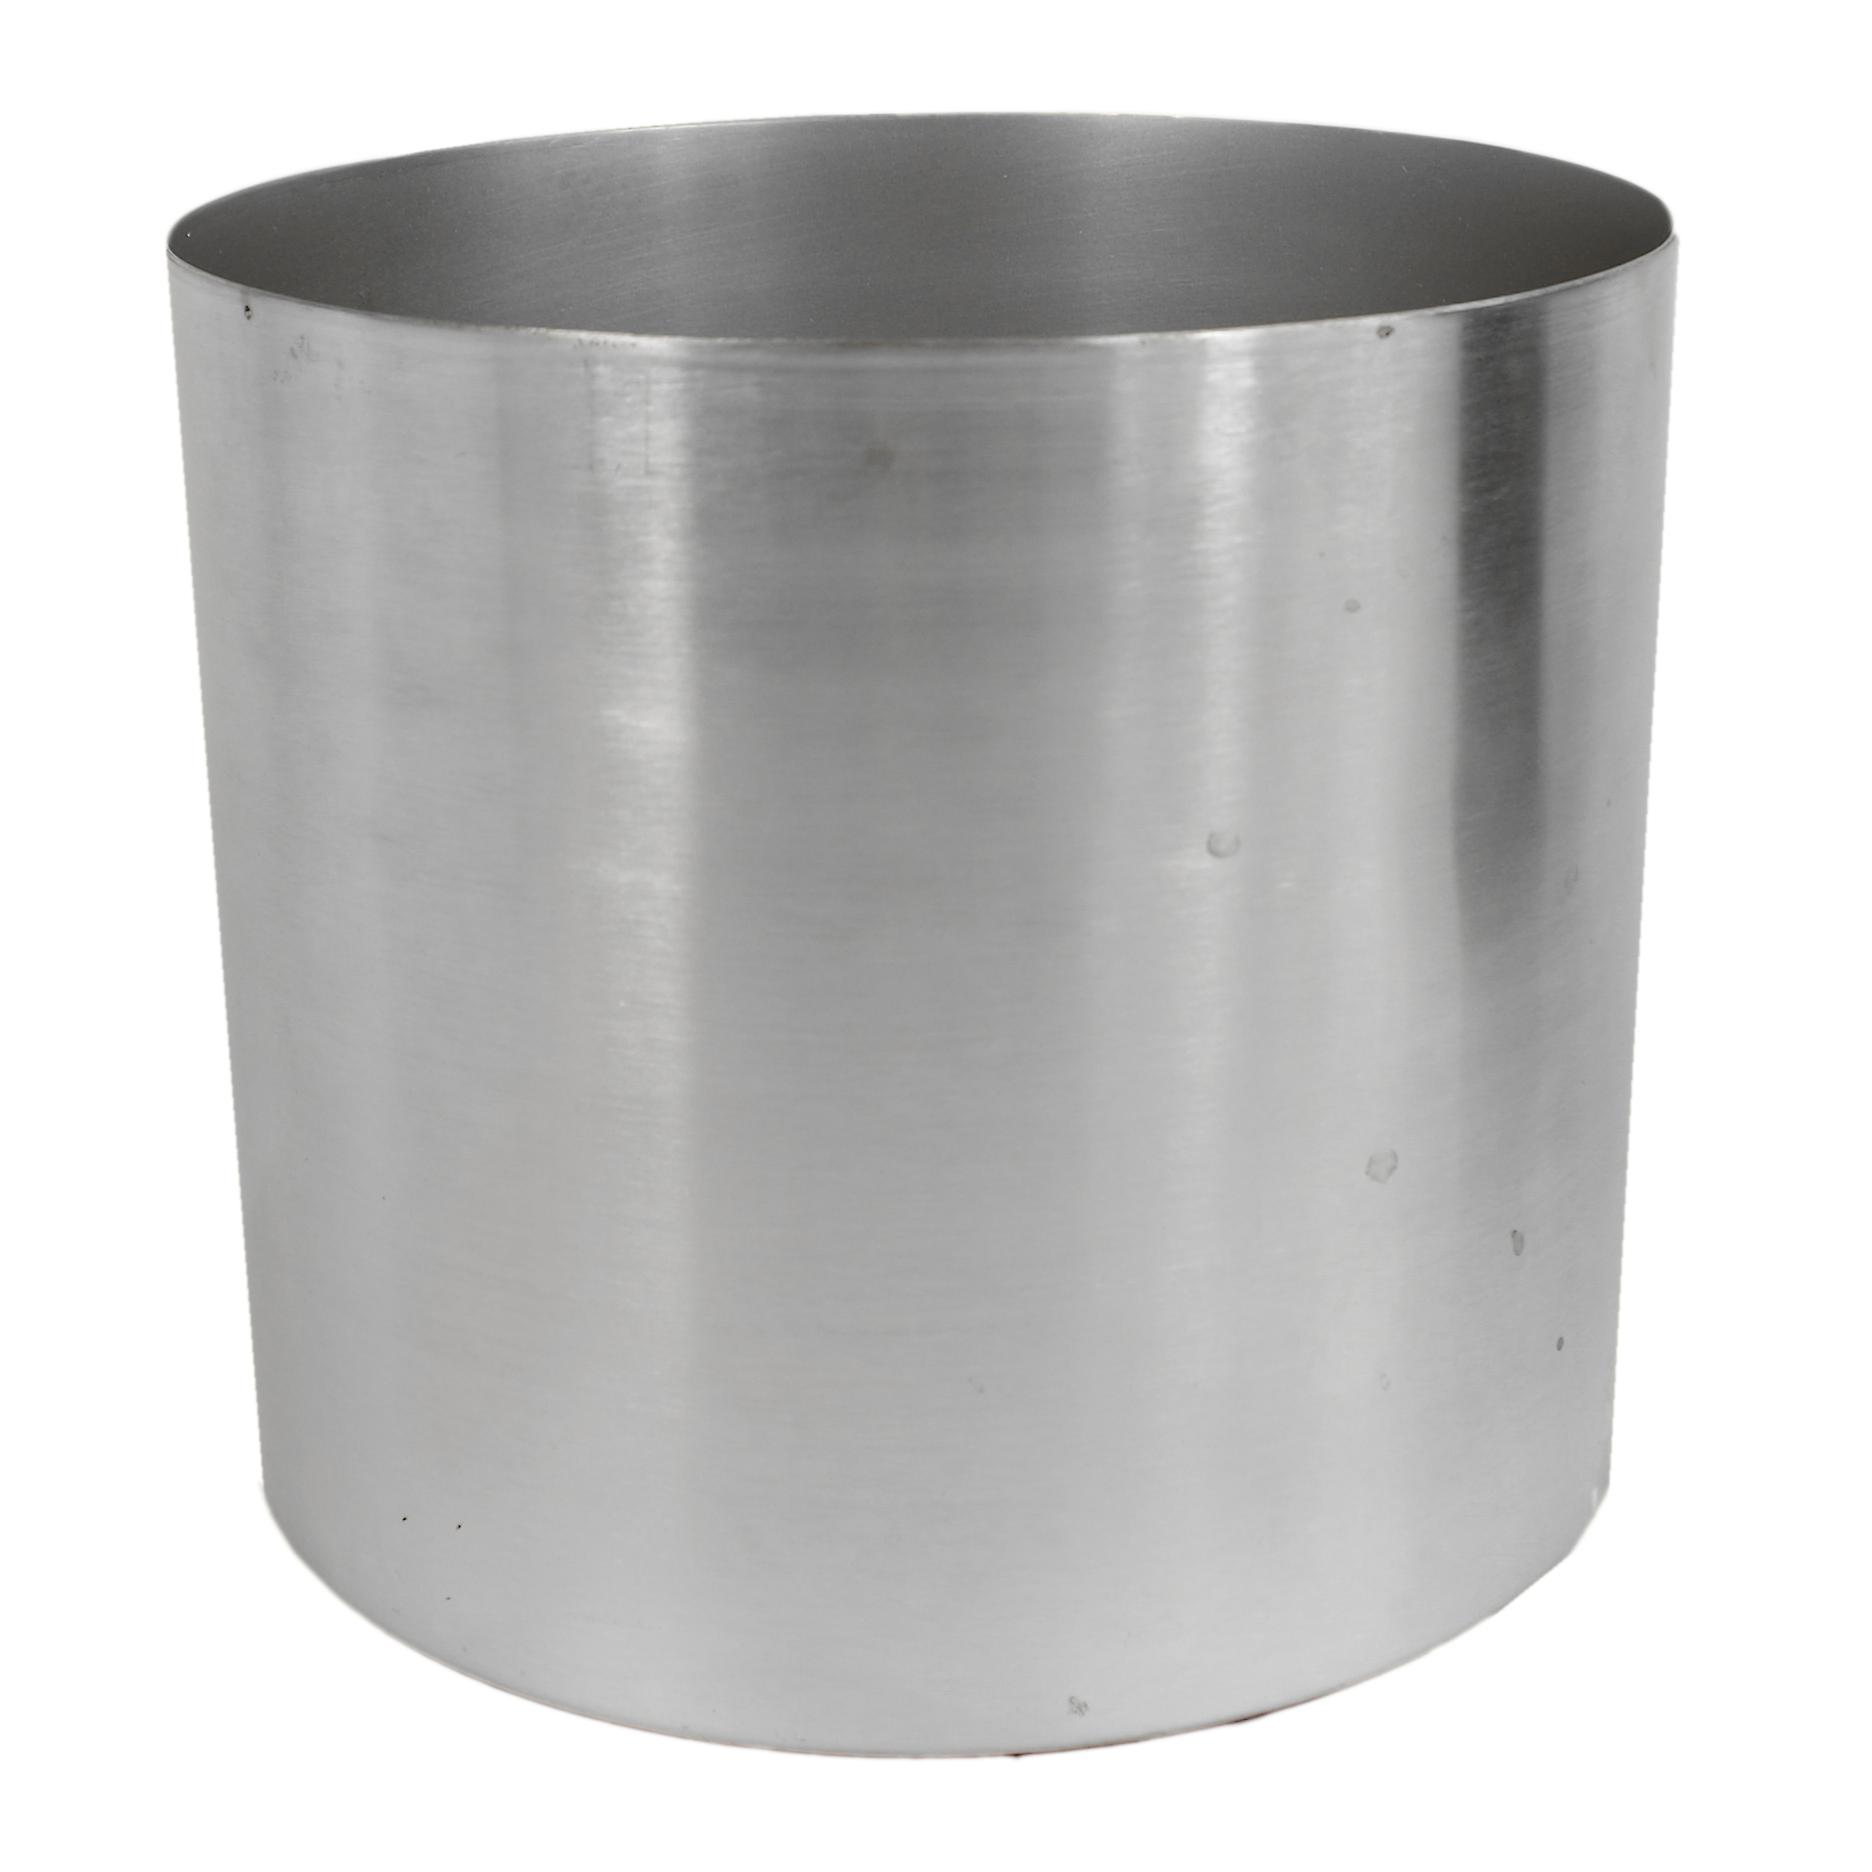 Leaf Metal Planter Plant Pot with Brushed Silver Finish 20 x 18cm